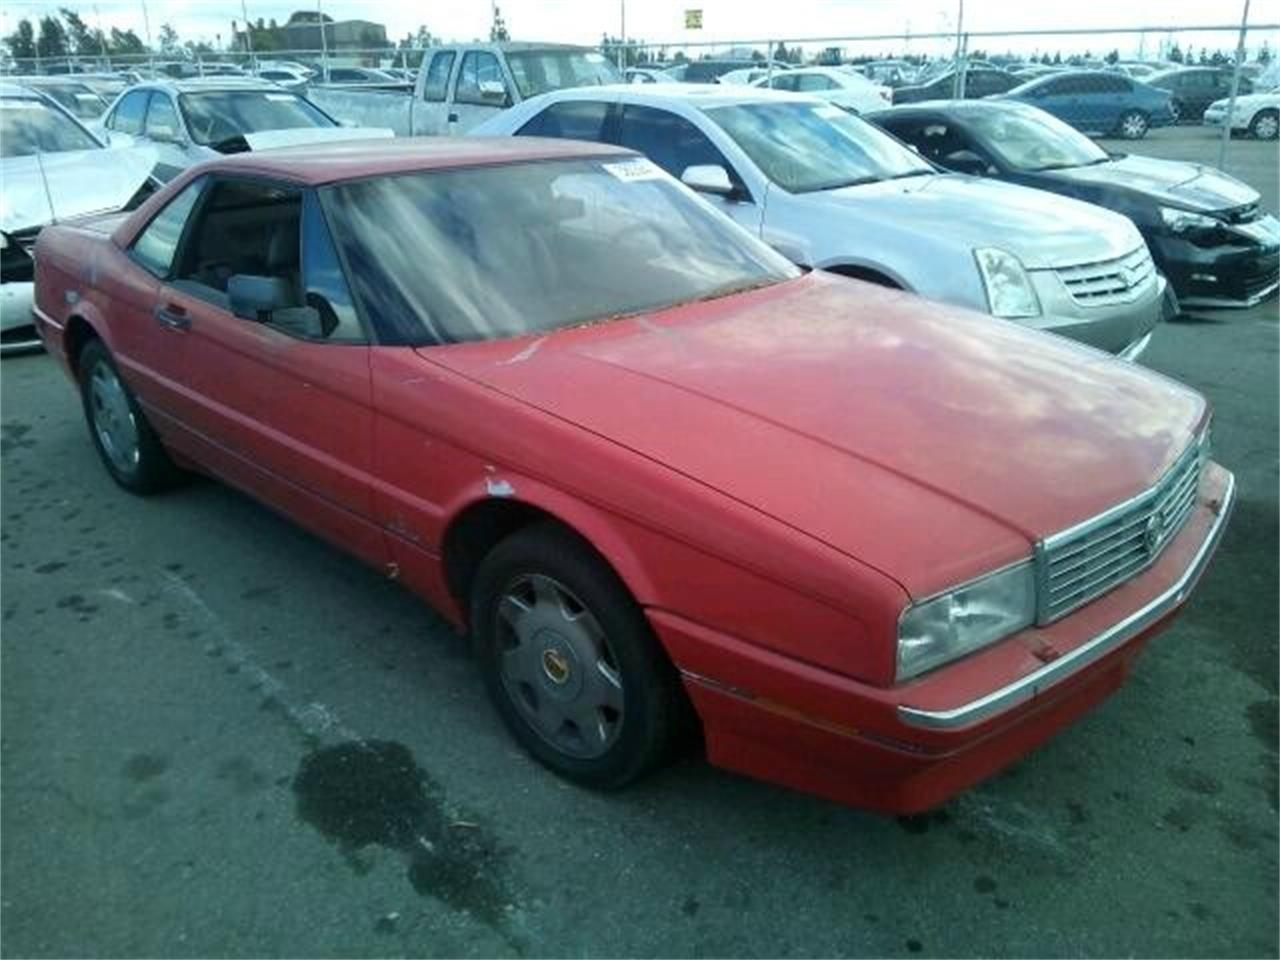 1989 Cadillac Allante for sale in Pahrump, NV